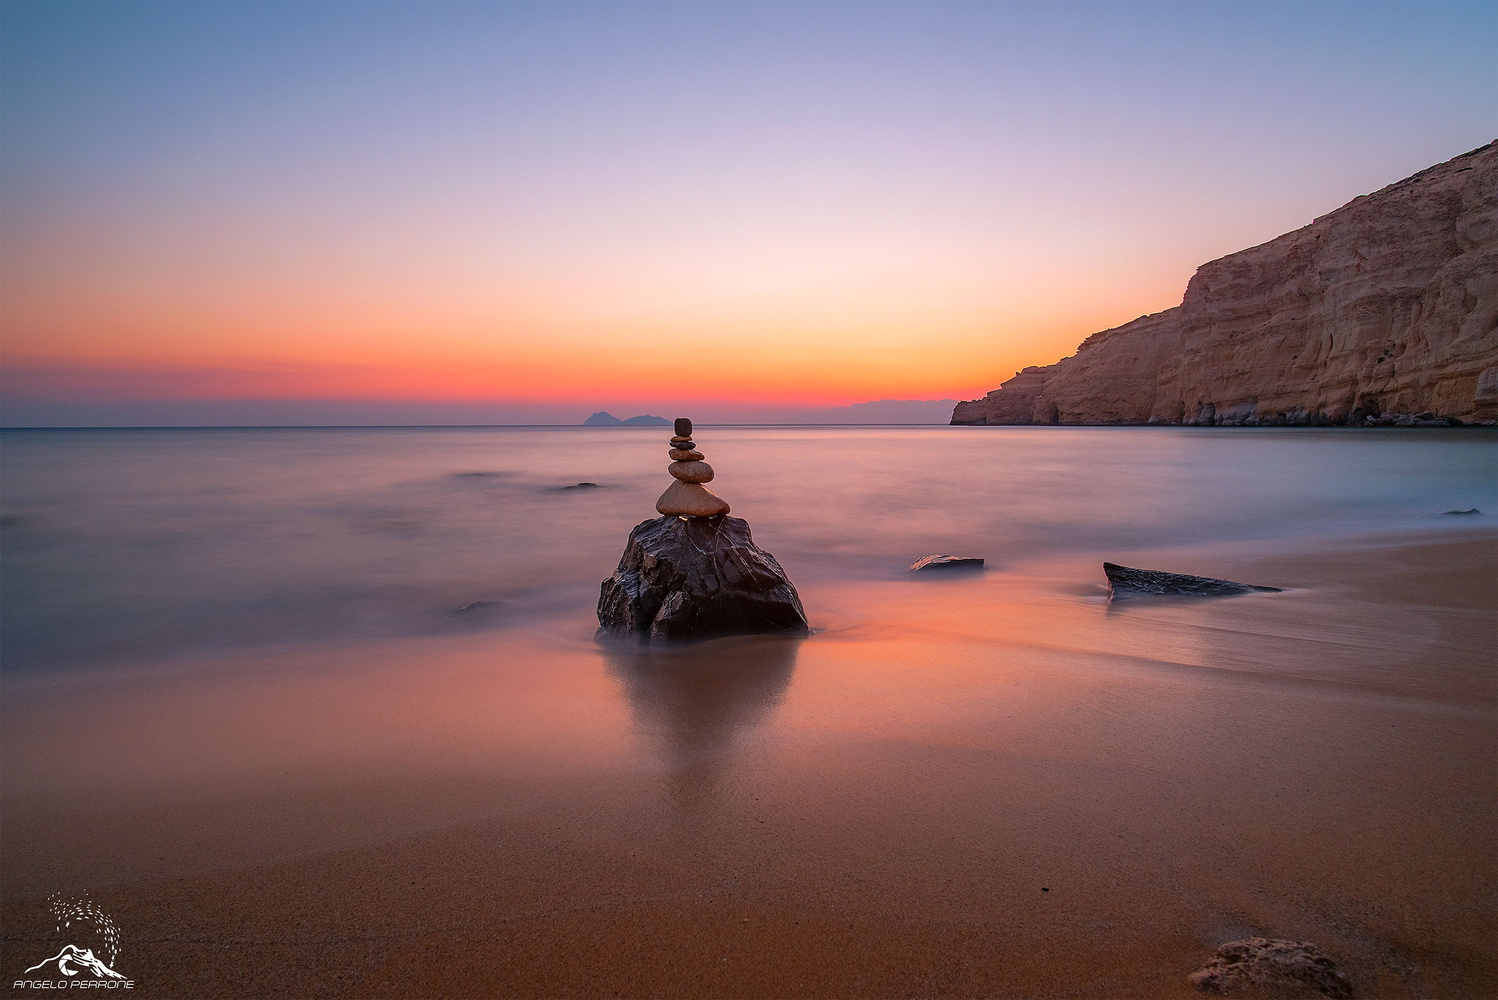 Sunset of Matala by ANGELO PERRONE